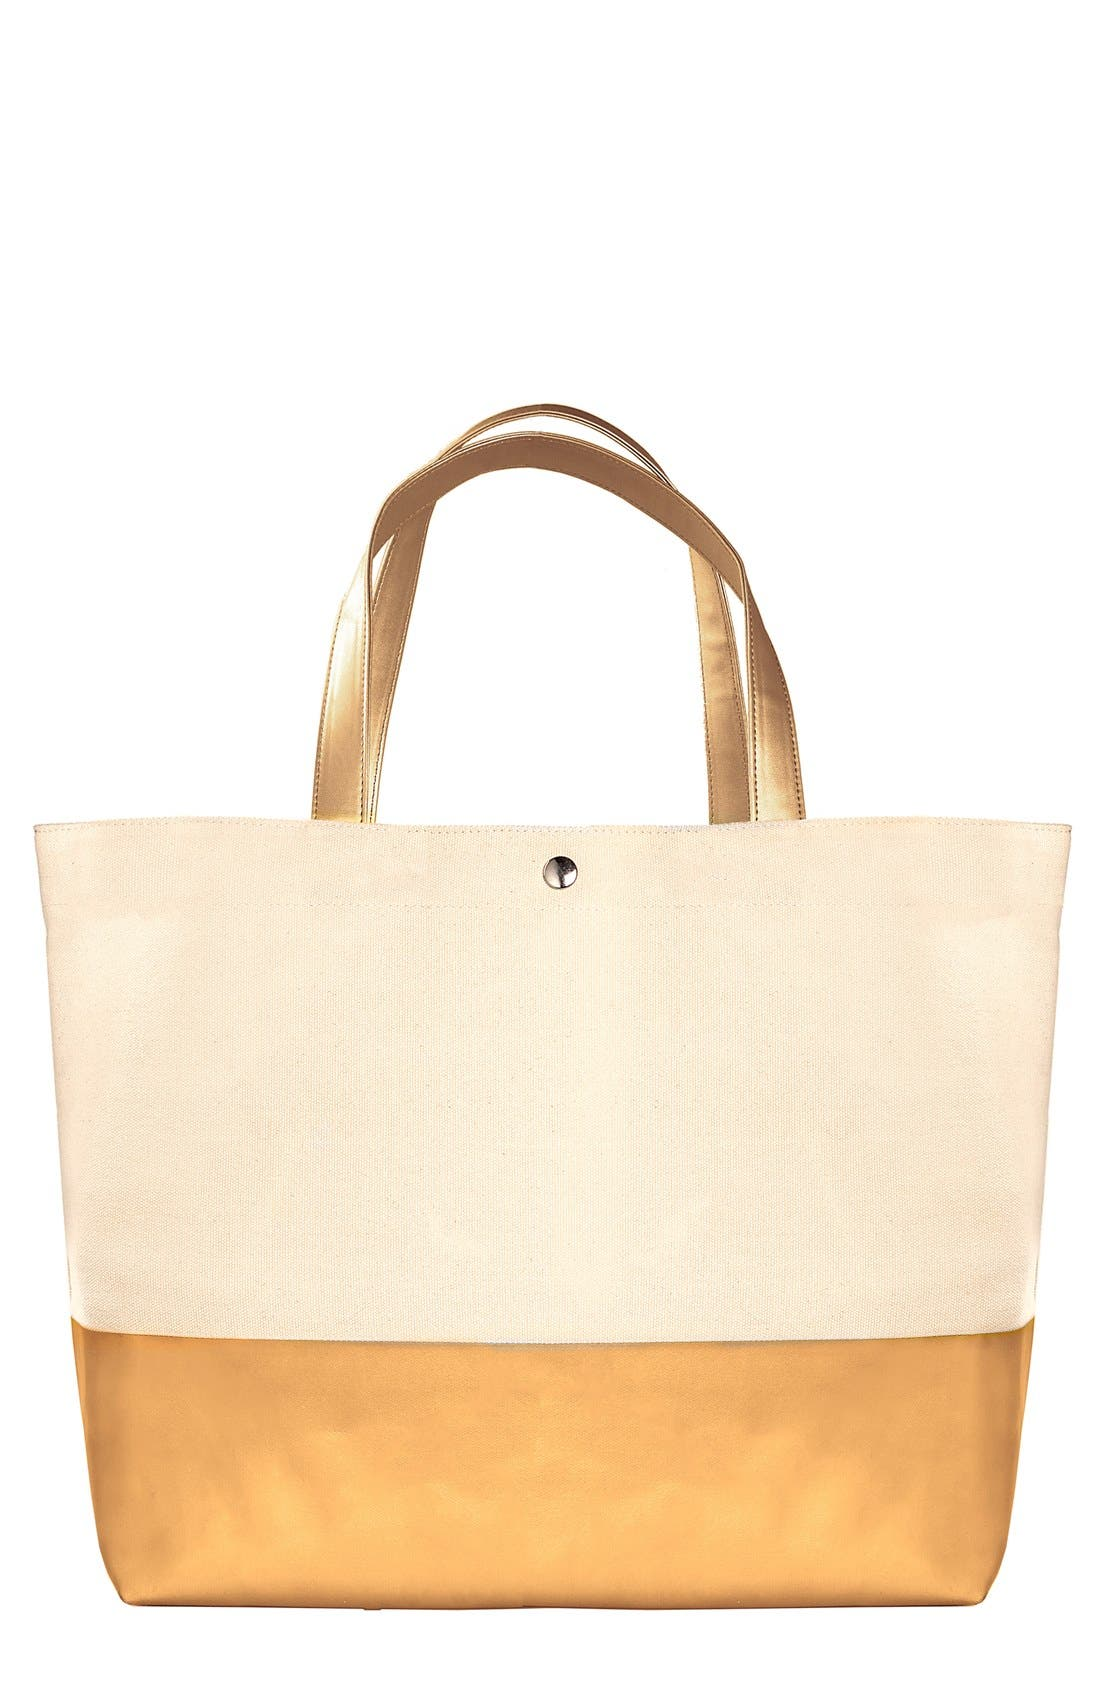 Monogram Canvas Tote,                         Main,                         color, GOLD